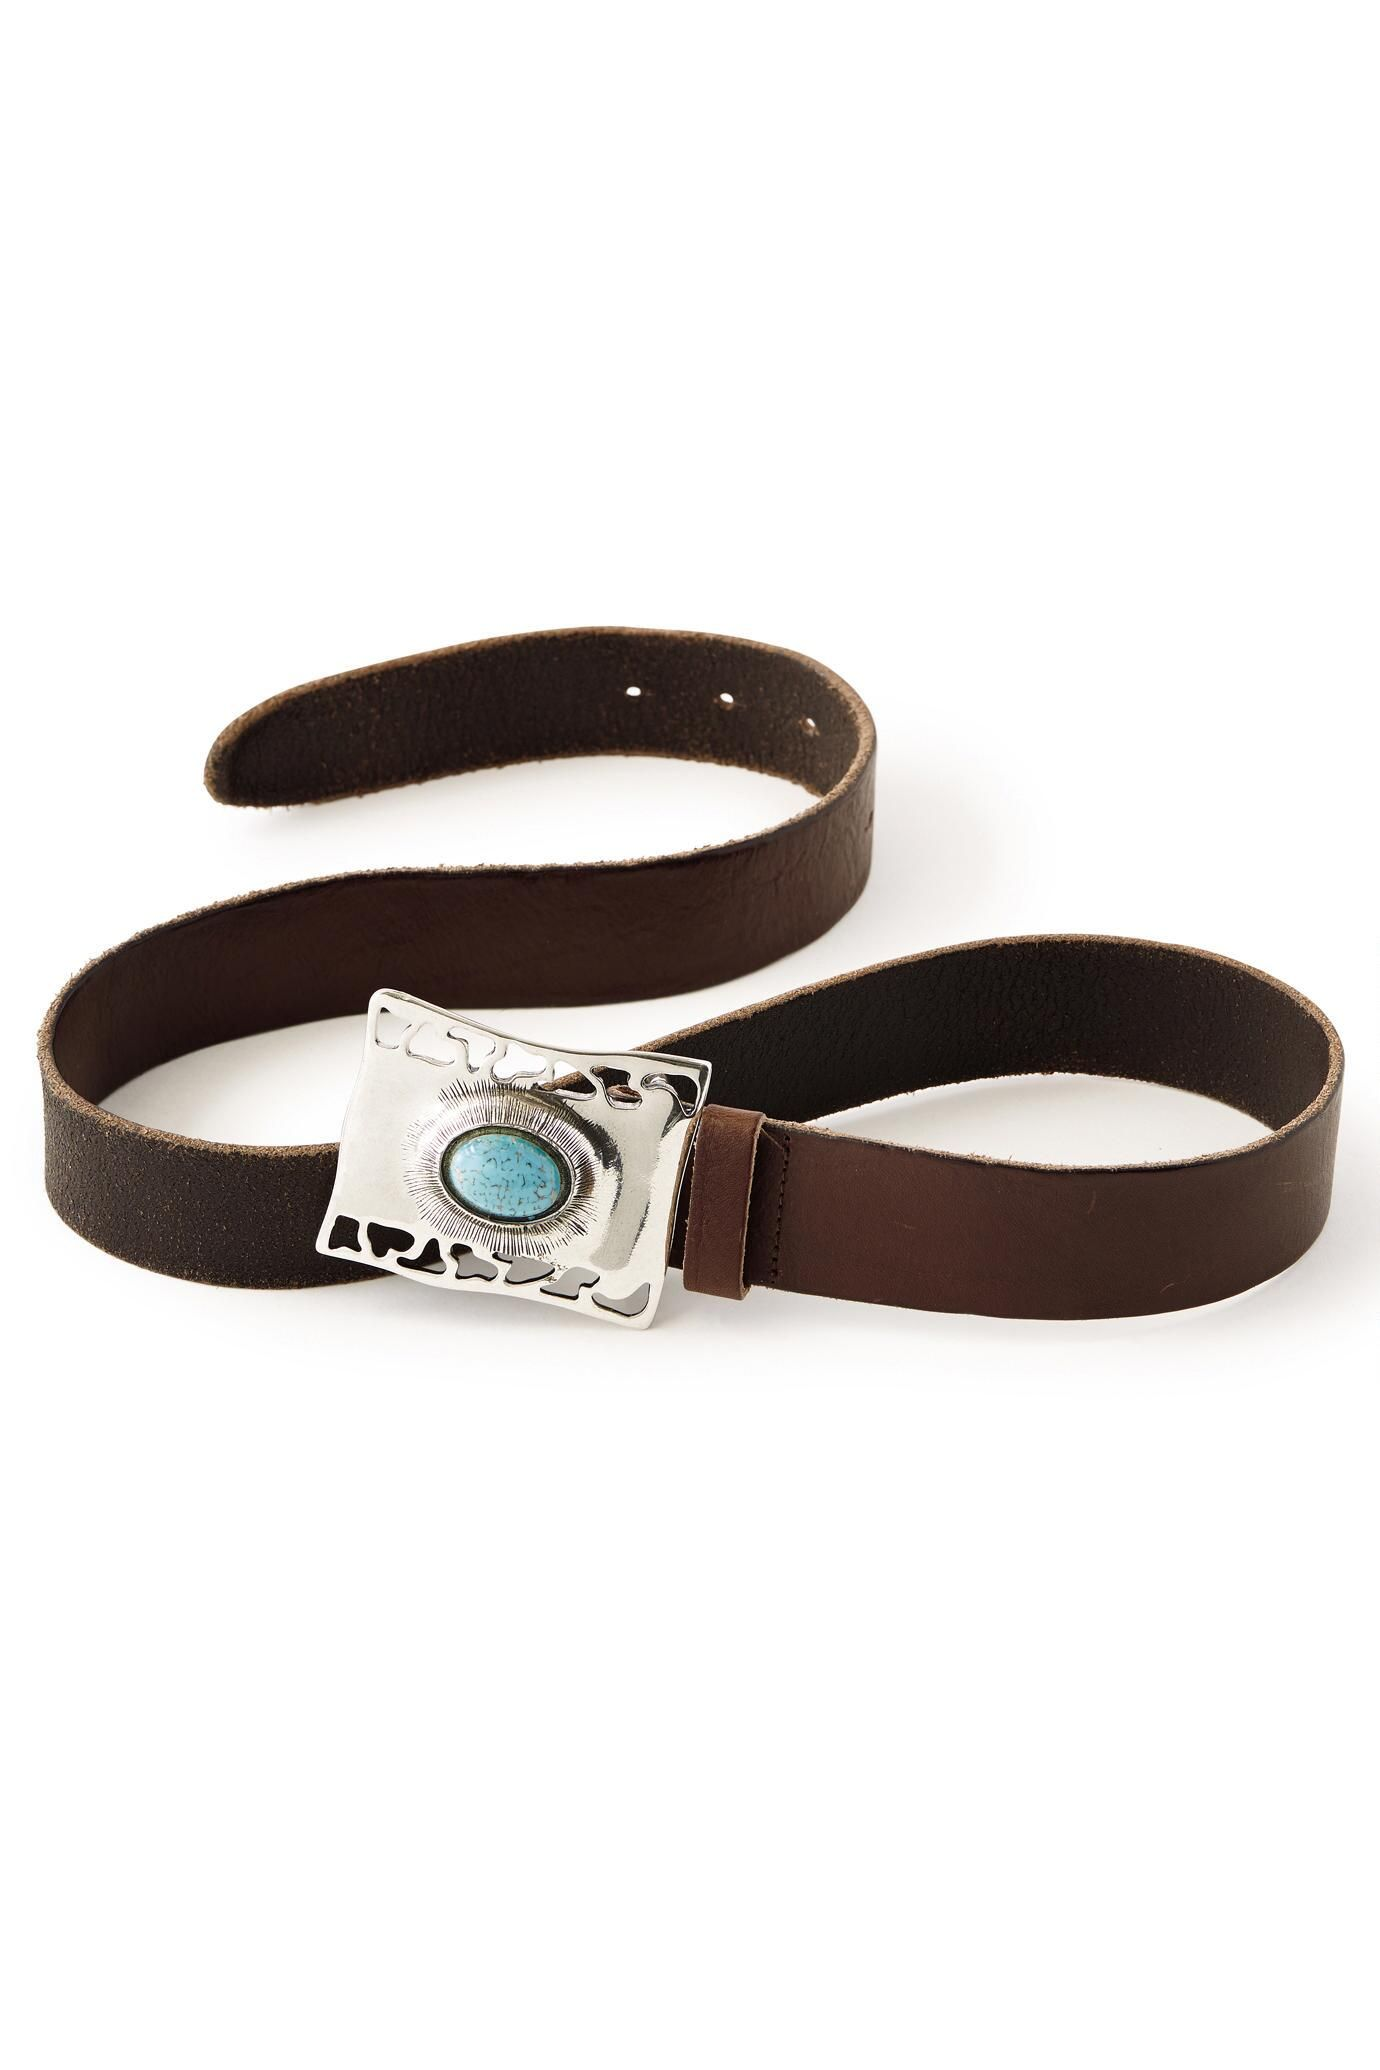 Coronado Leather Belt With Silver & Turquoise Buckle. This rugged leather belt with polished metal buckle was made in USA.